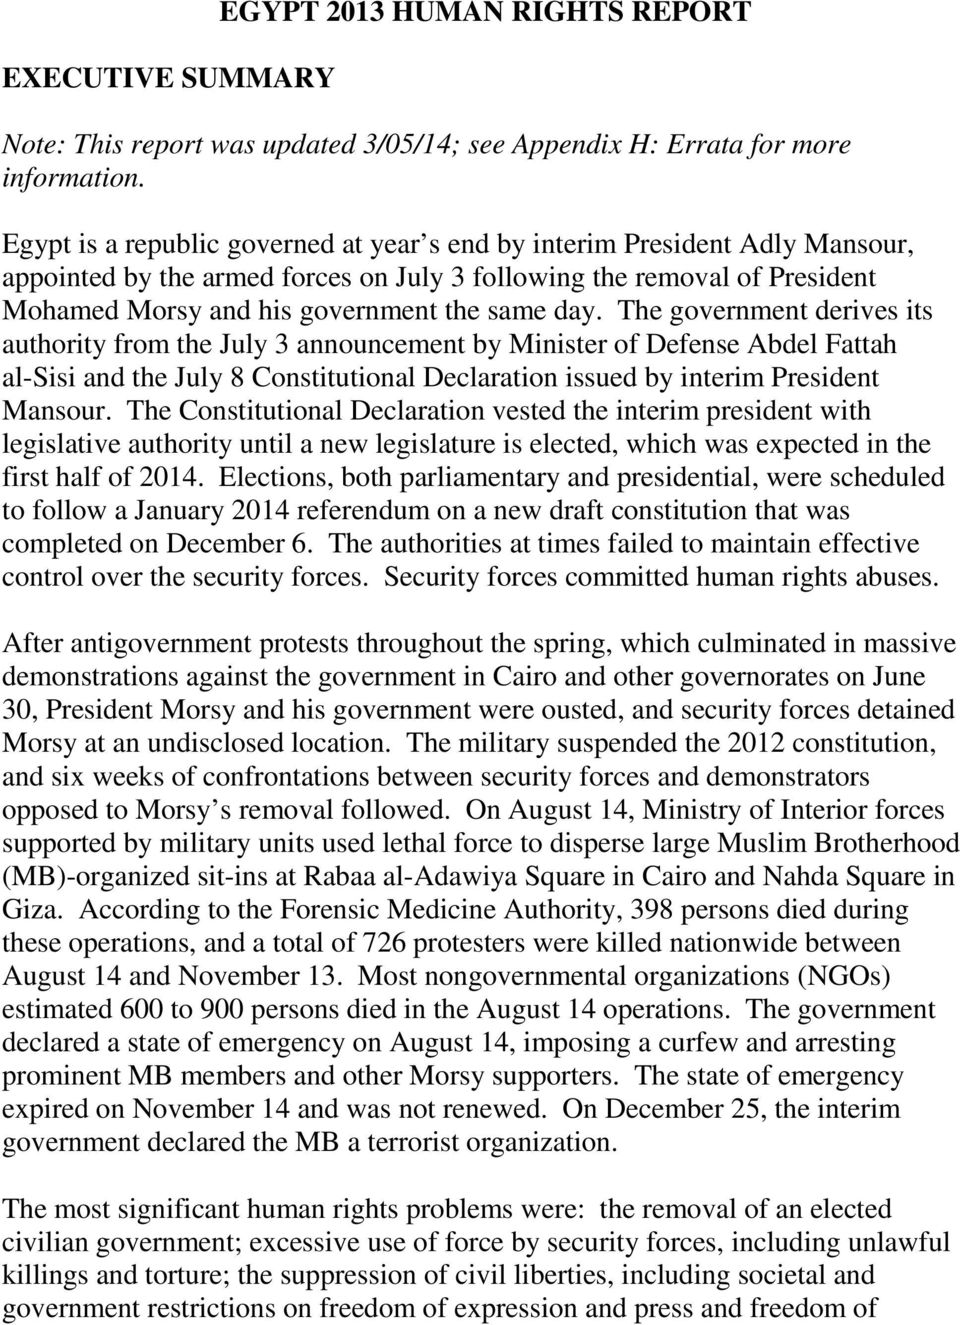 The government derives its authority from the July 3 announcement by Minister of Defense Abdel Fattah al-sisi and the July 8 Constitutional Declaration issued by interim President Mansour.